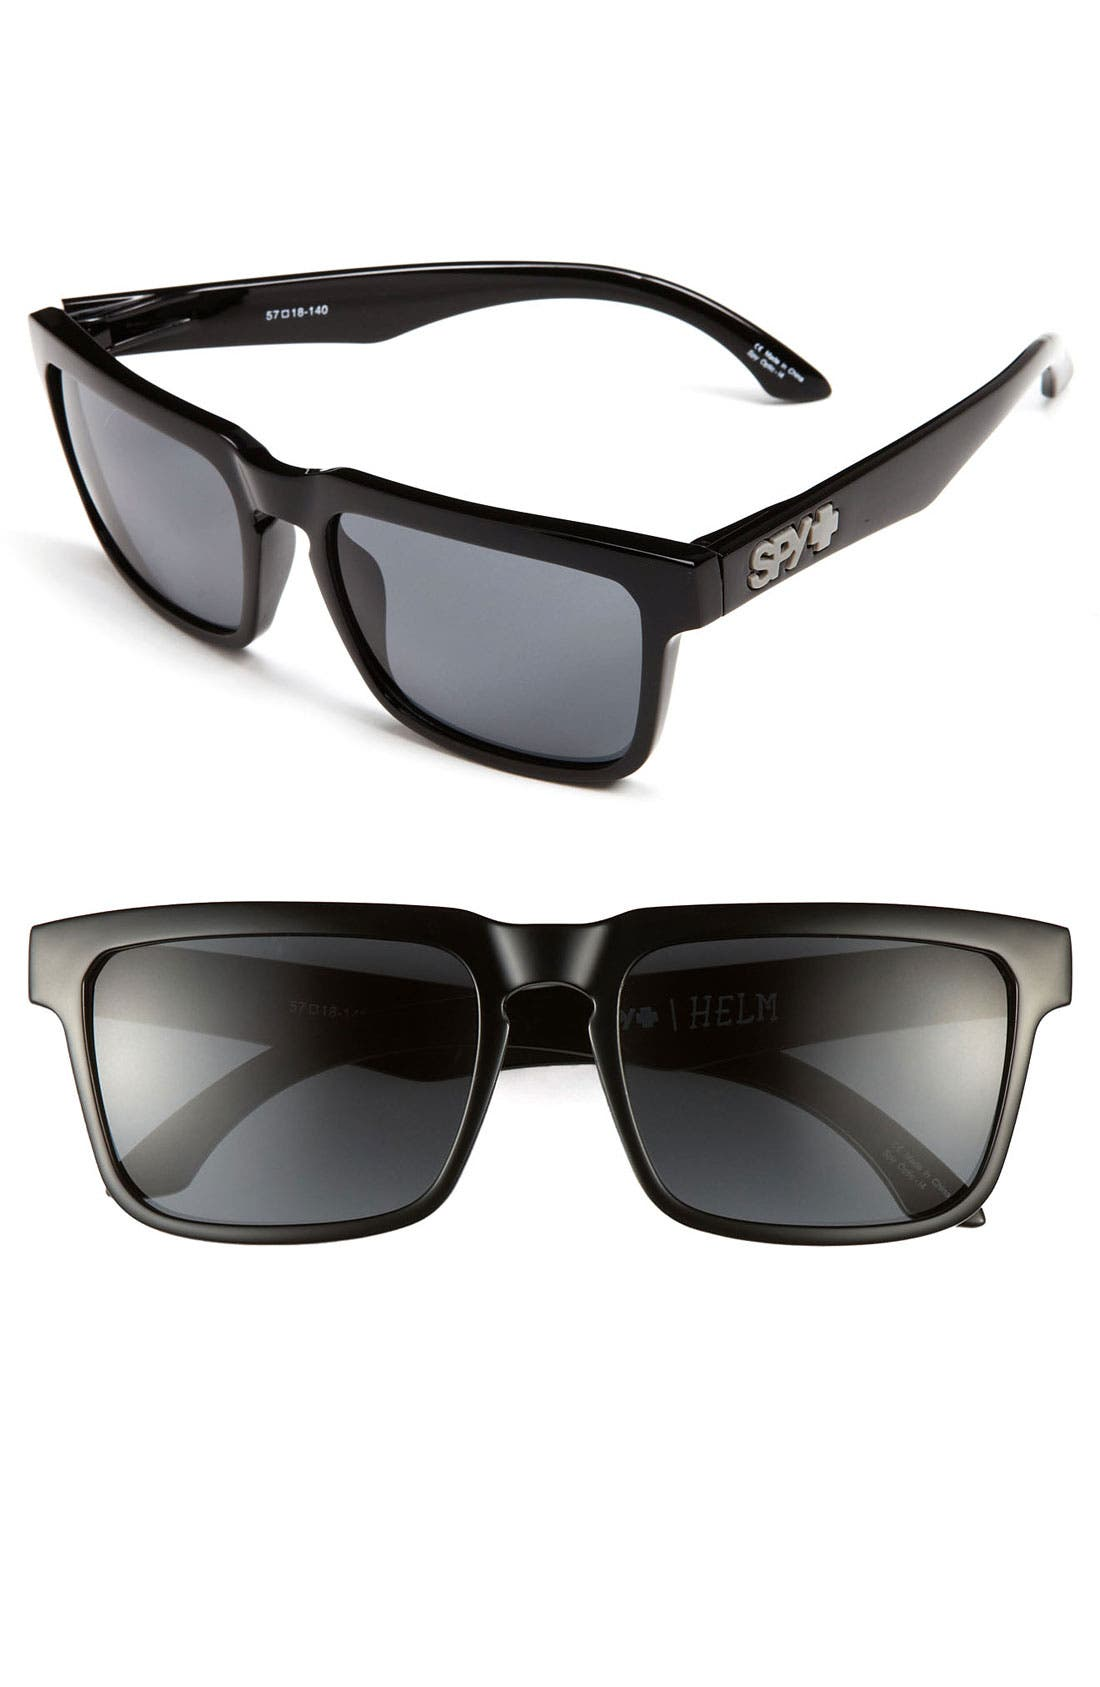 Alternate Image 1 Selected - SPY Optic 'Helm' 57mm Sunglasses